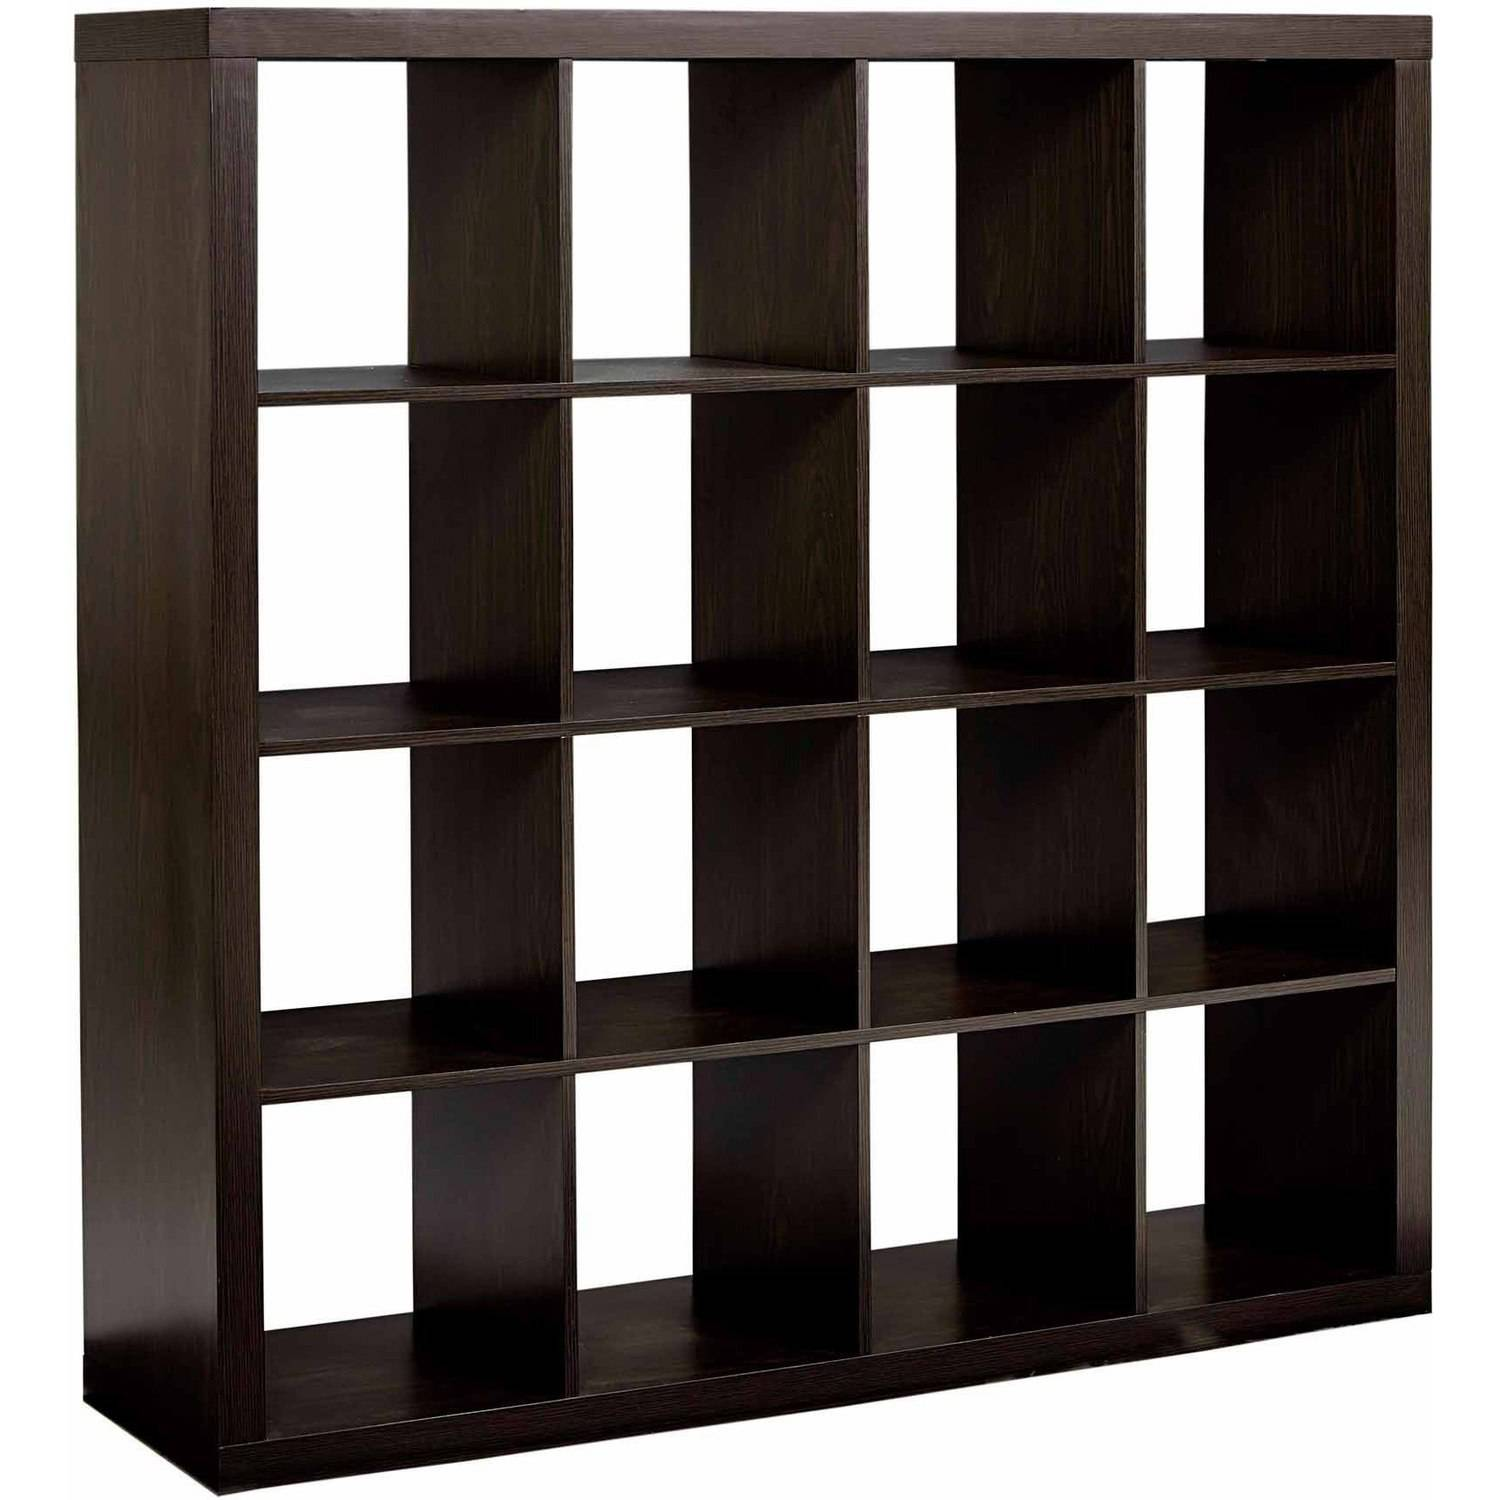 cubes of large narrow wood inch open black plastic shelving organizer full storage size shelf cubby bookcase stackable boxes square furniture unit system cube dark units